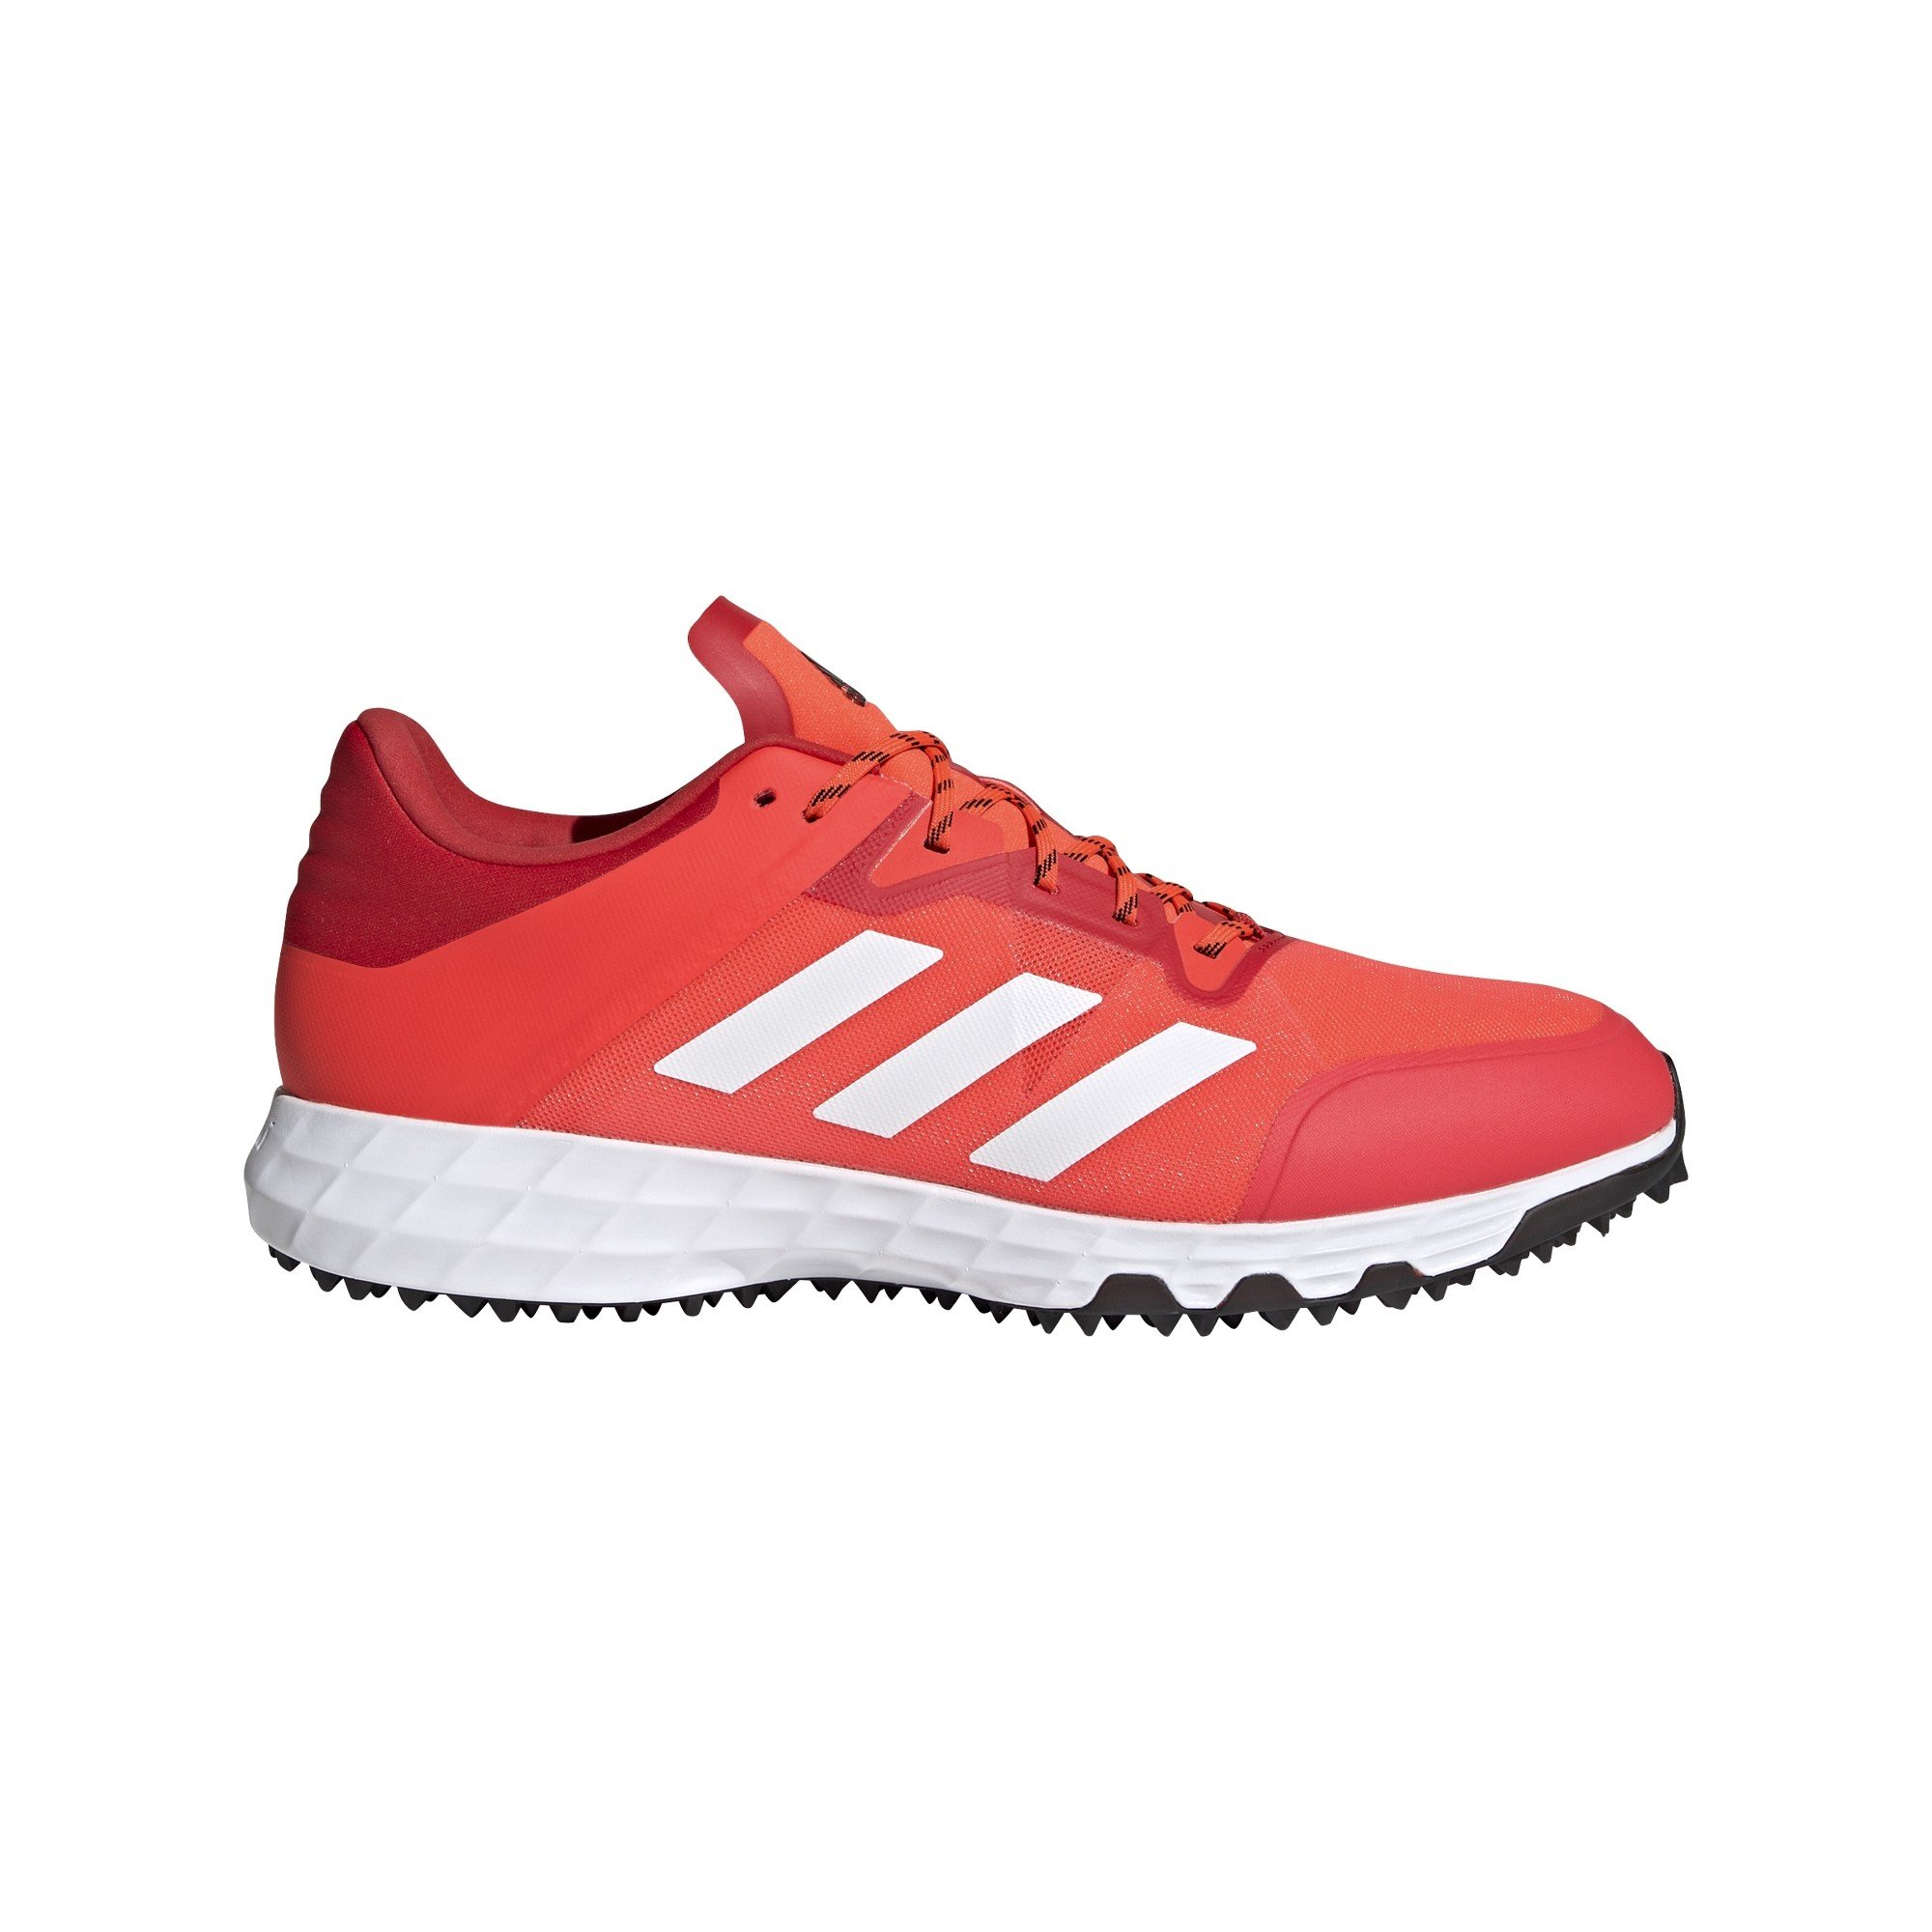 2021/22 Adidas Lux 2.0 Hockey Shoes - Red/White